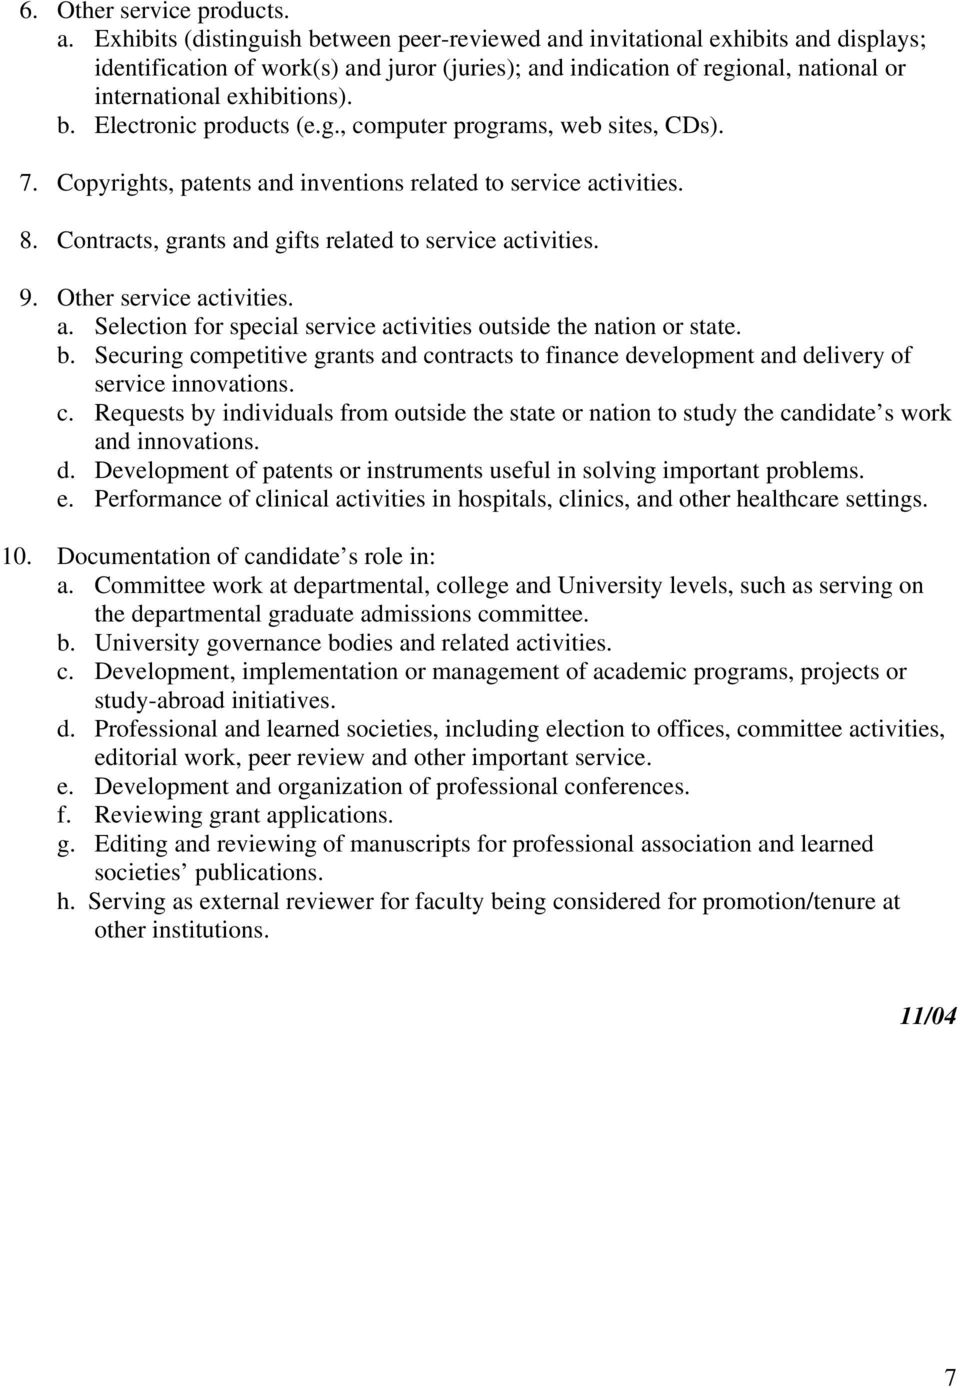 g., computer programs, web sites, CDs). 7. Copyrights, patents and inventions related to service activities. 8. Contracts, grants and gifts related to service activities. 9. Other service activities.